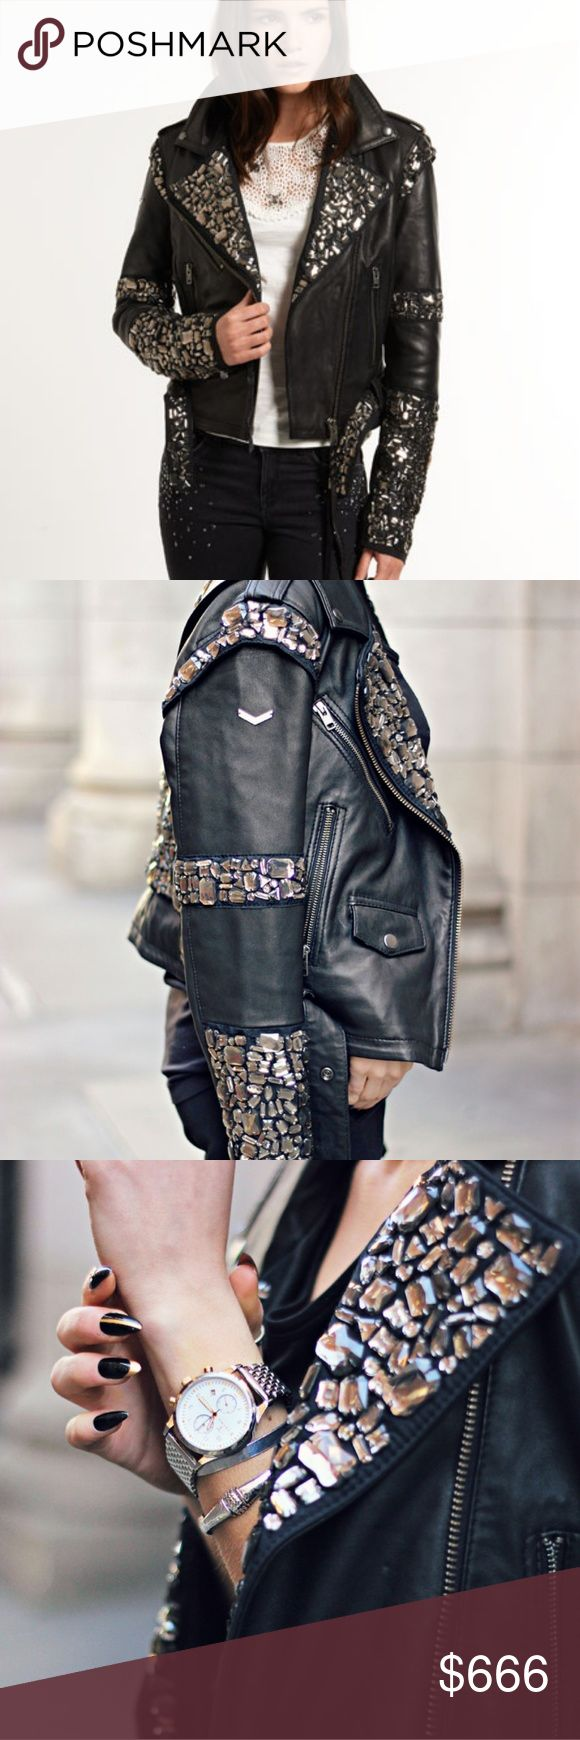 ISO superdry premium bubble biker jacket Wanted ad not for sale.  I'm looking for this embellished leather moto jacket made by super dry. If you're selling one please let me know. I'm open to size and price! Superdry Jackets & Coats